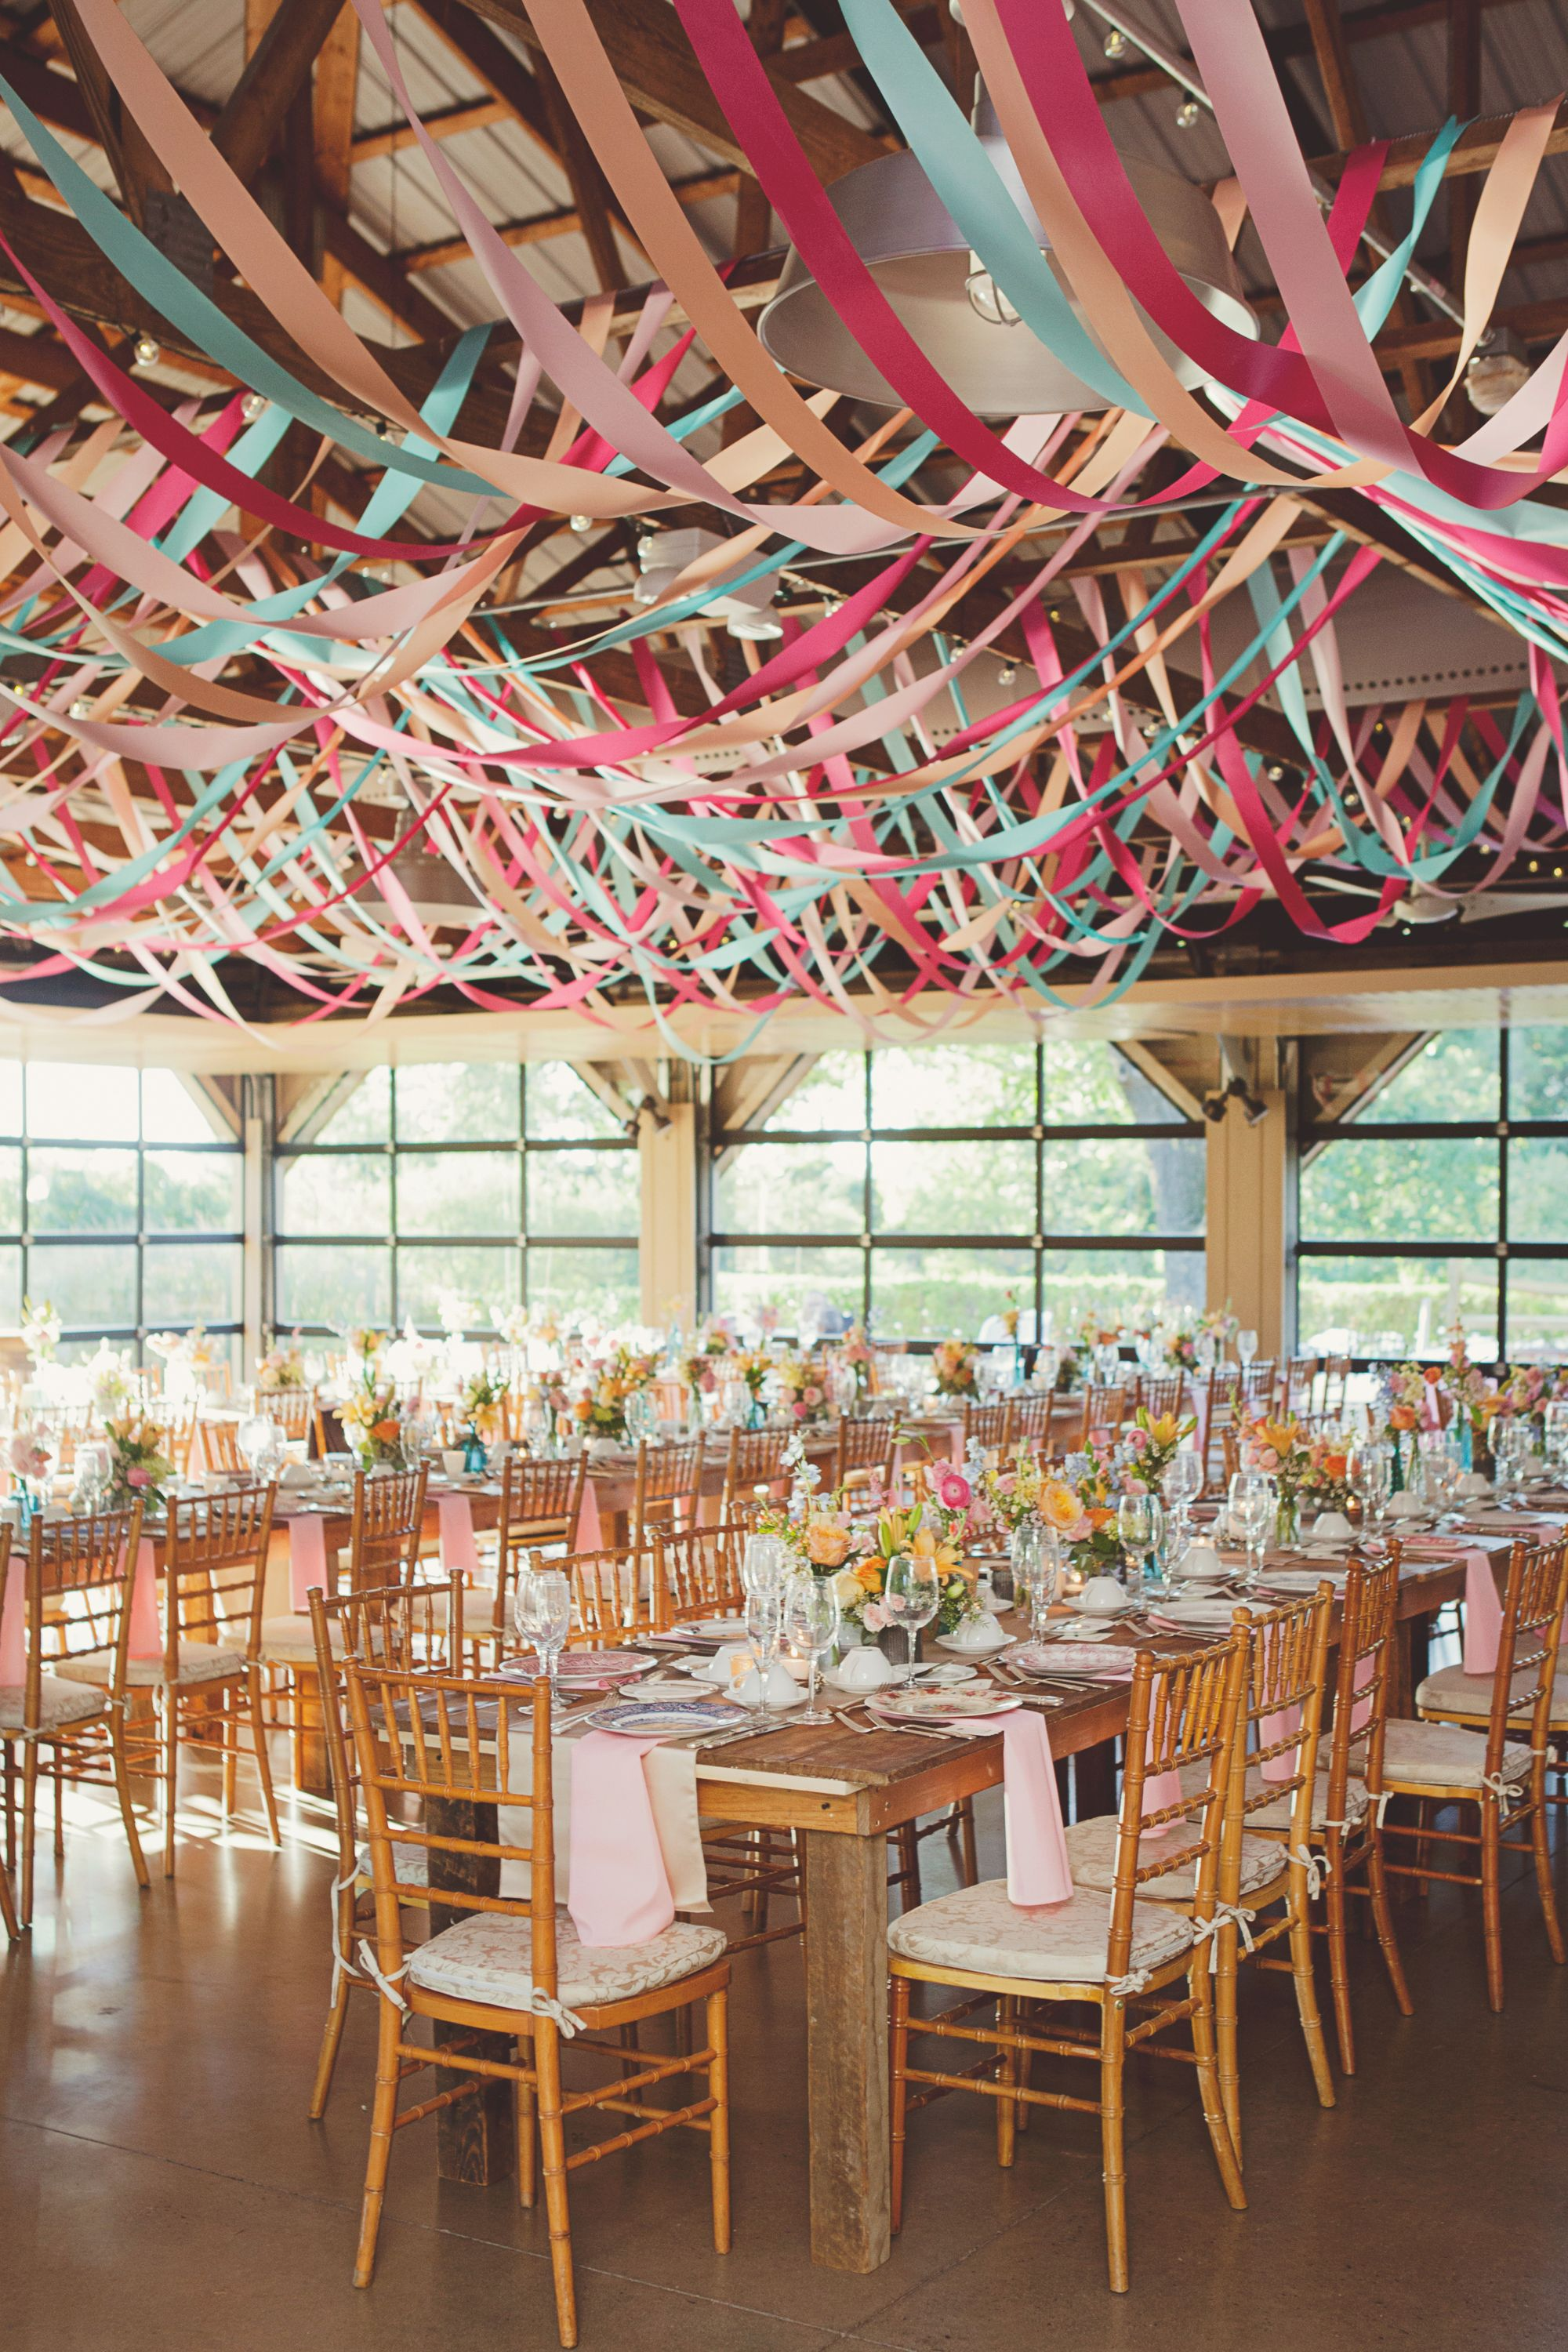 Wallpaper hd diy wedding reception design for invitations laptop high resolution like the streamers front porches